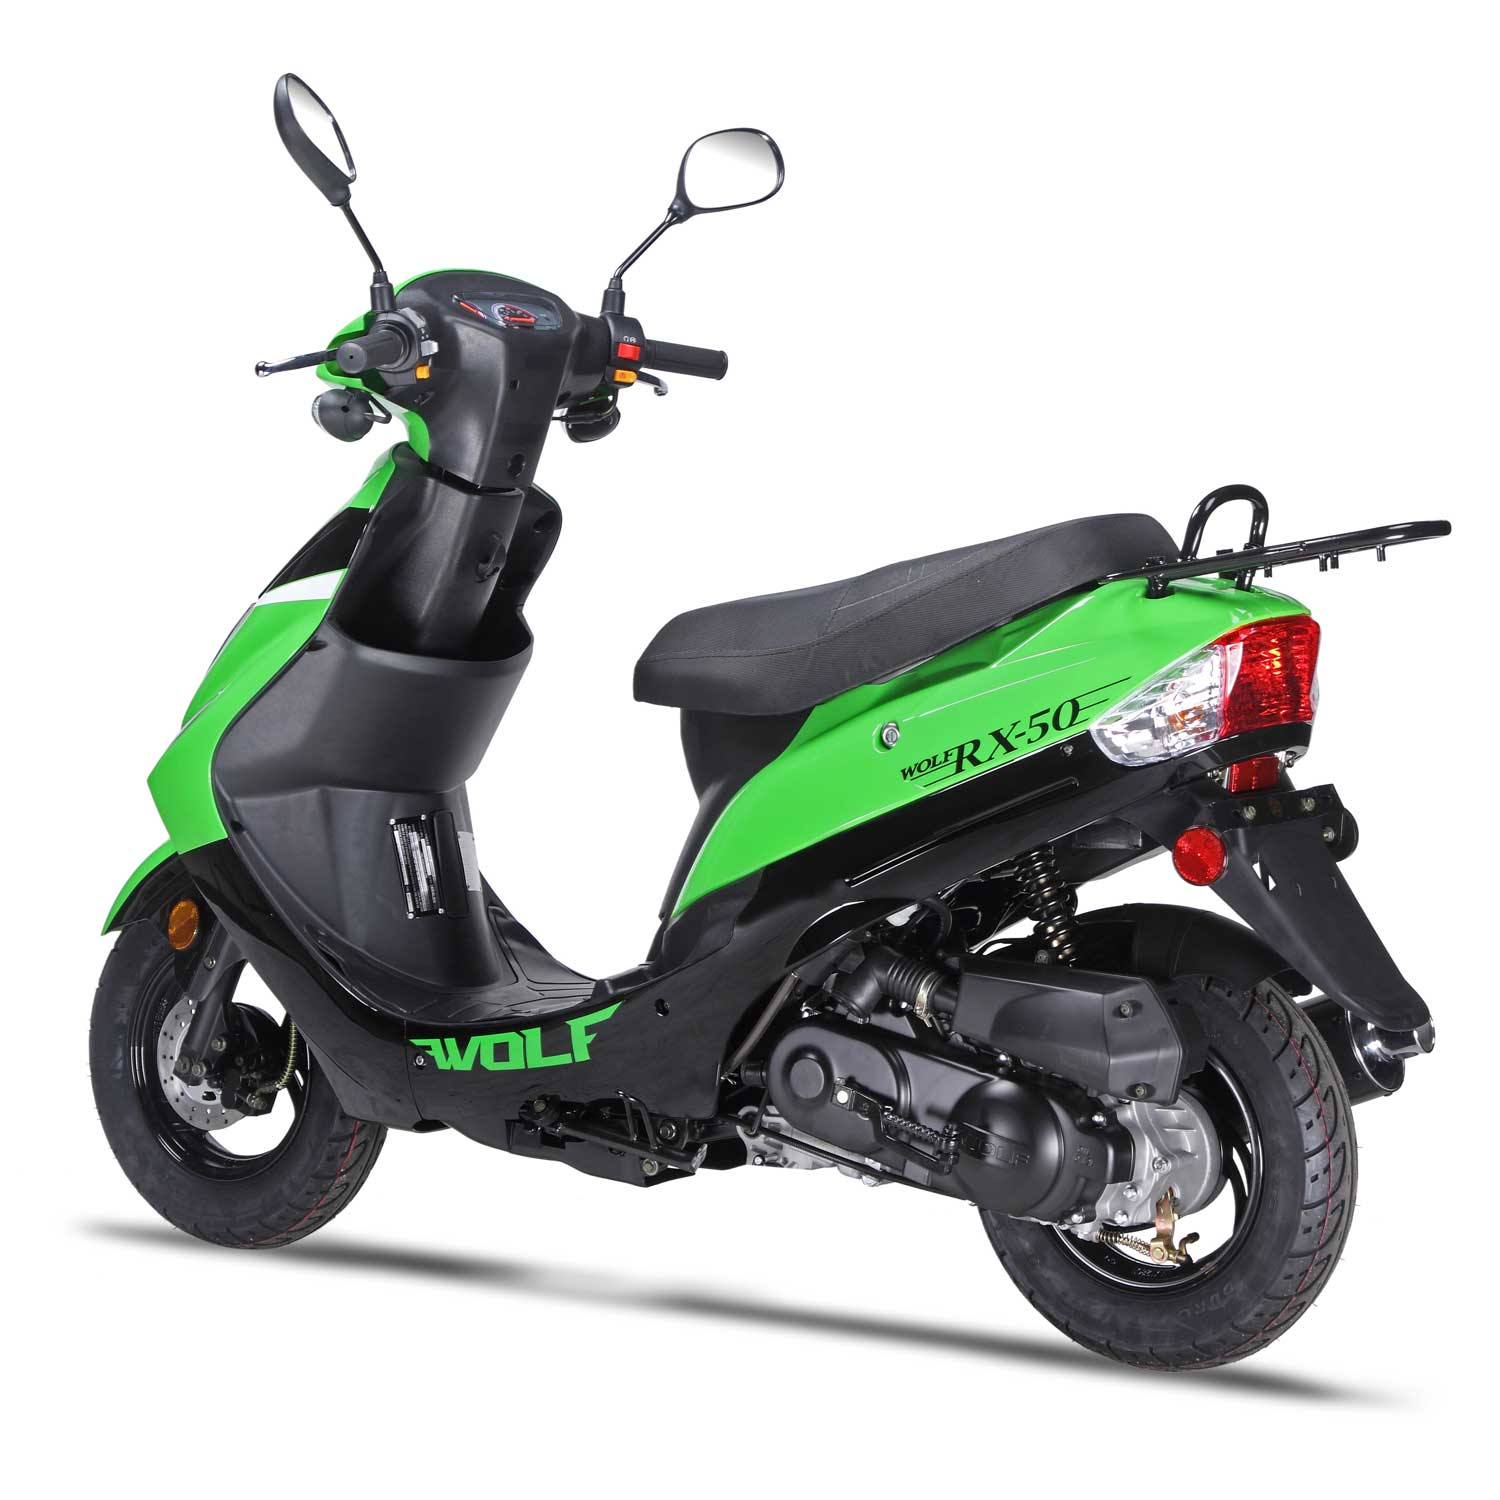 50cc Scooter Wolf RX-50 - 50cc Scooter